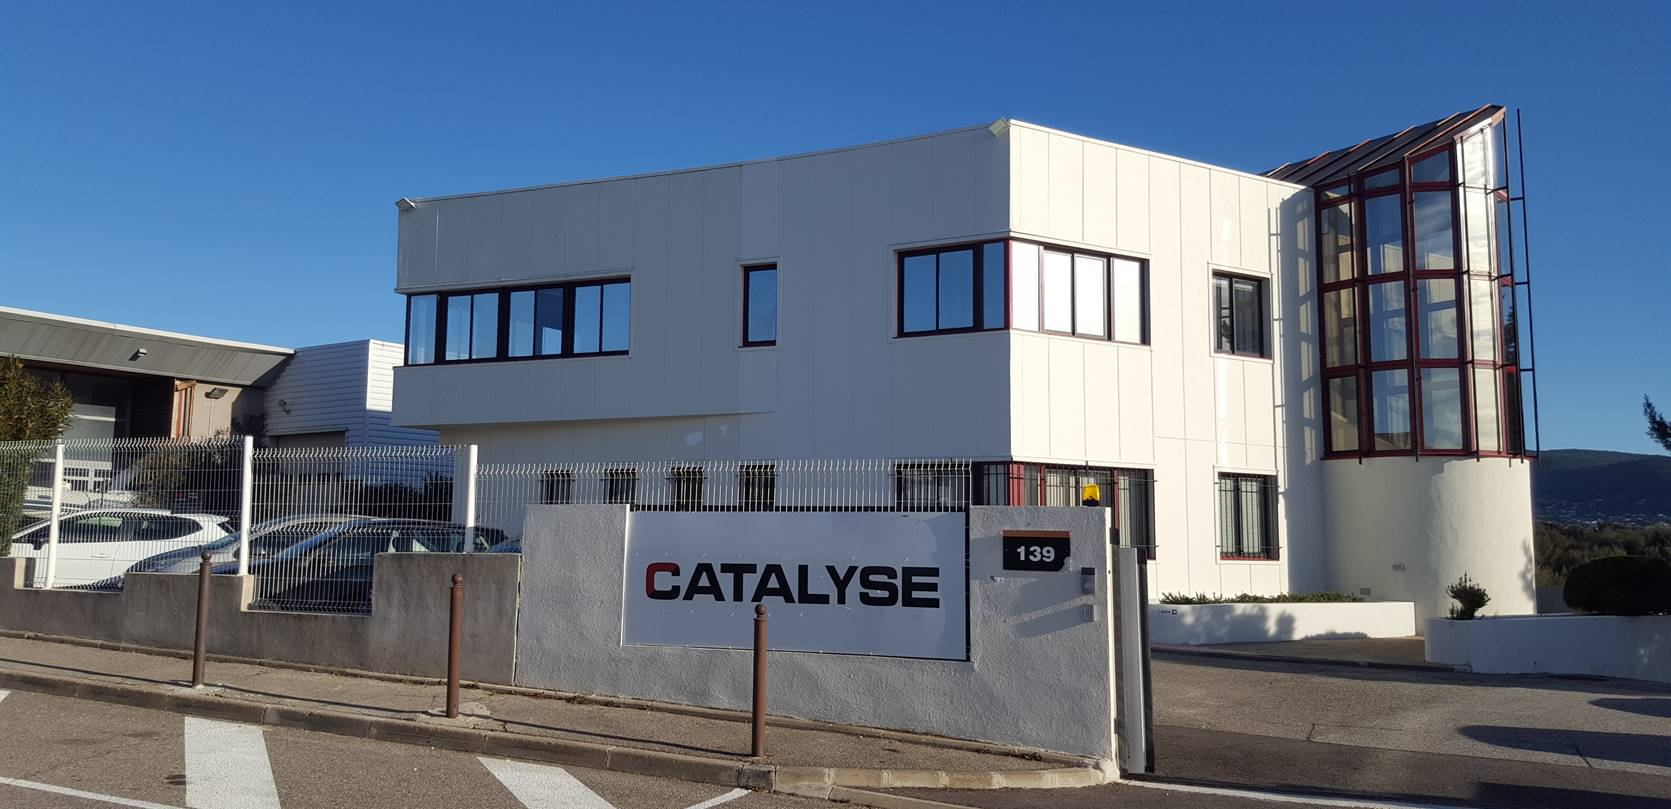 catalyse-location